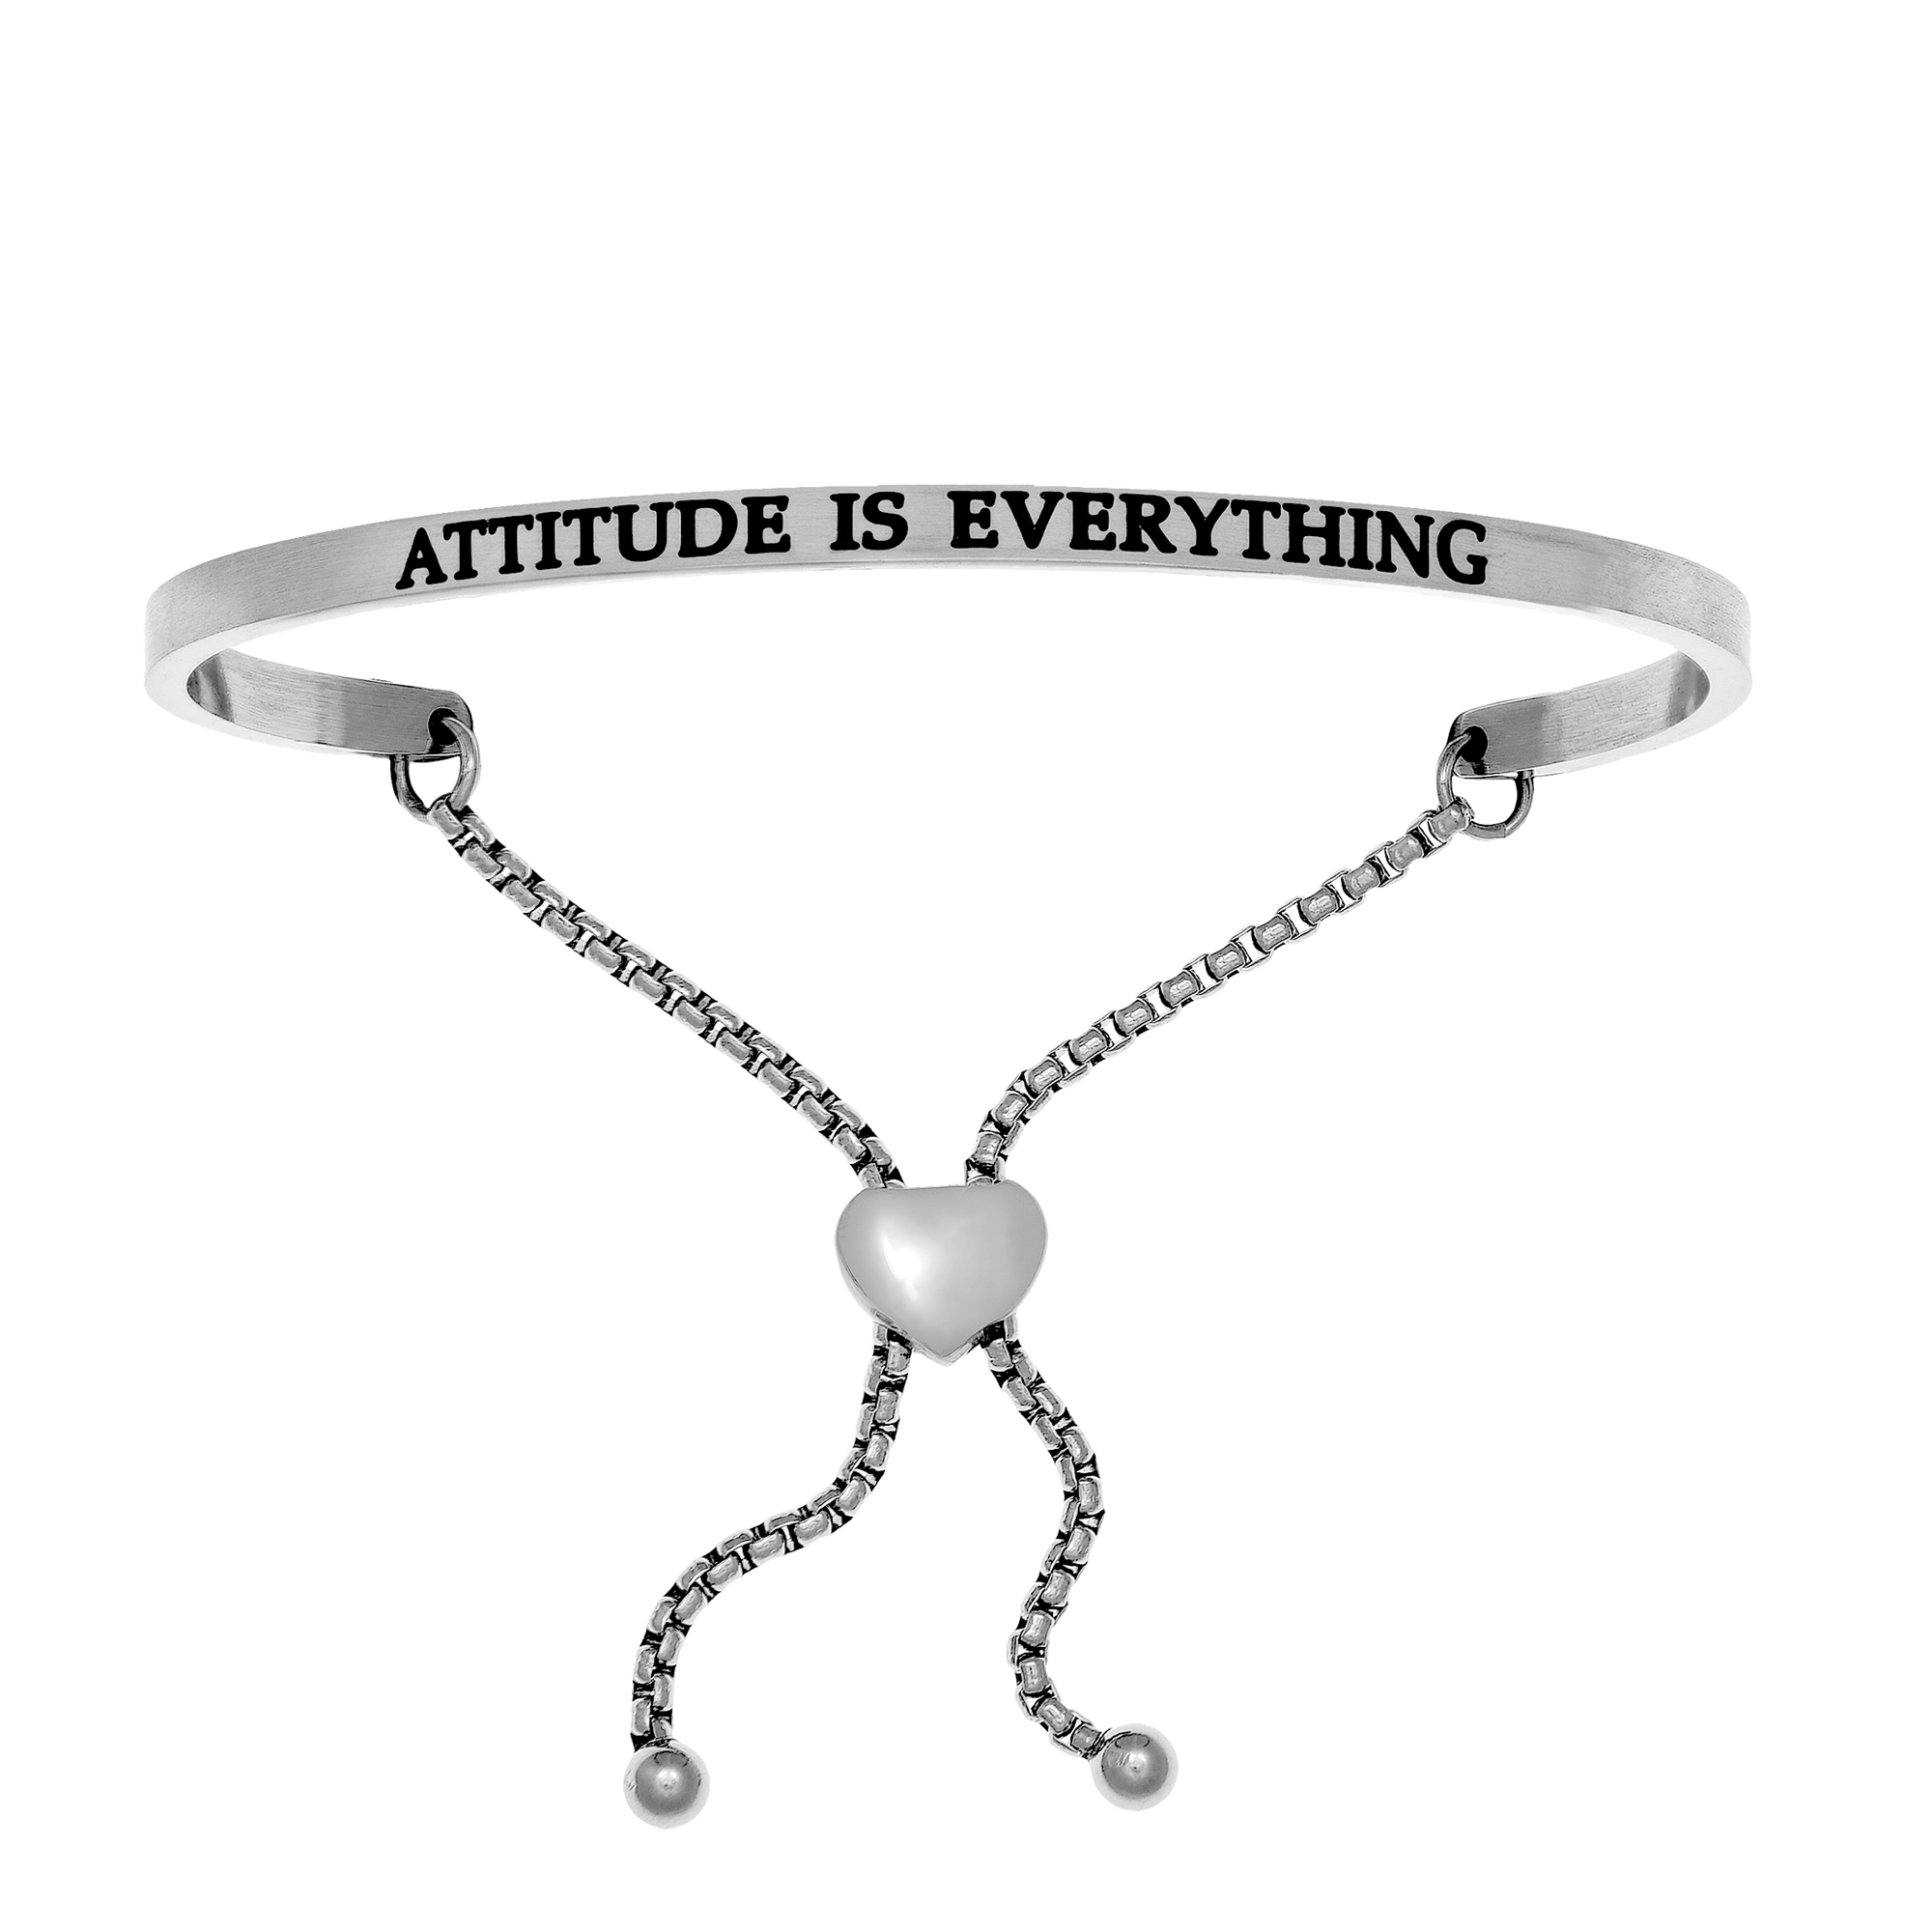 Intuitions Stainless Steel ATTITUDE IS EVERYTHING Diamond Accent Adjustable Bracelet Each of these bracelets carries a personal message of inspiration, spirituality or just plain fun. Meant to be worn alone or stacked together for a smart, contemporary look, they're a great self-purchase or as a gift for family or friends. Intuitions are made of stainless steel and come in two styles standard cuff or friendship and fit practically any wrist. Intuitions Jewelry makes the difference in your daily life by designing and creating bracelets and bangles with motivational quotes to inspire you and your loved ones. Giving back $.25 of each bracelet to BABY2BABY